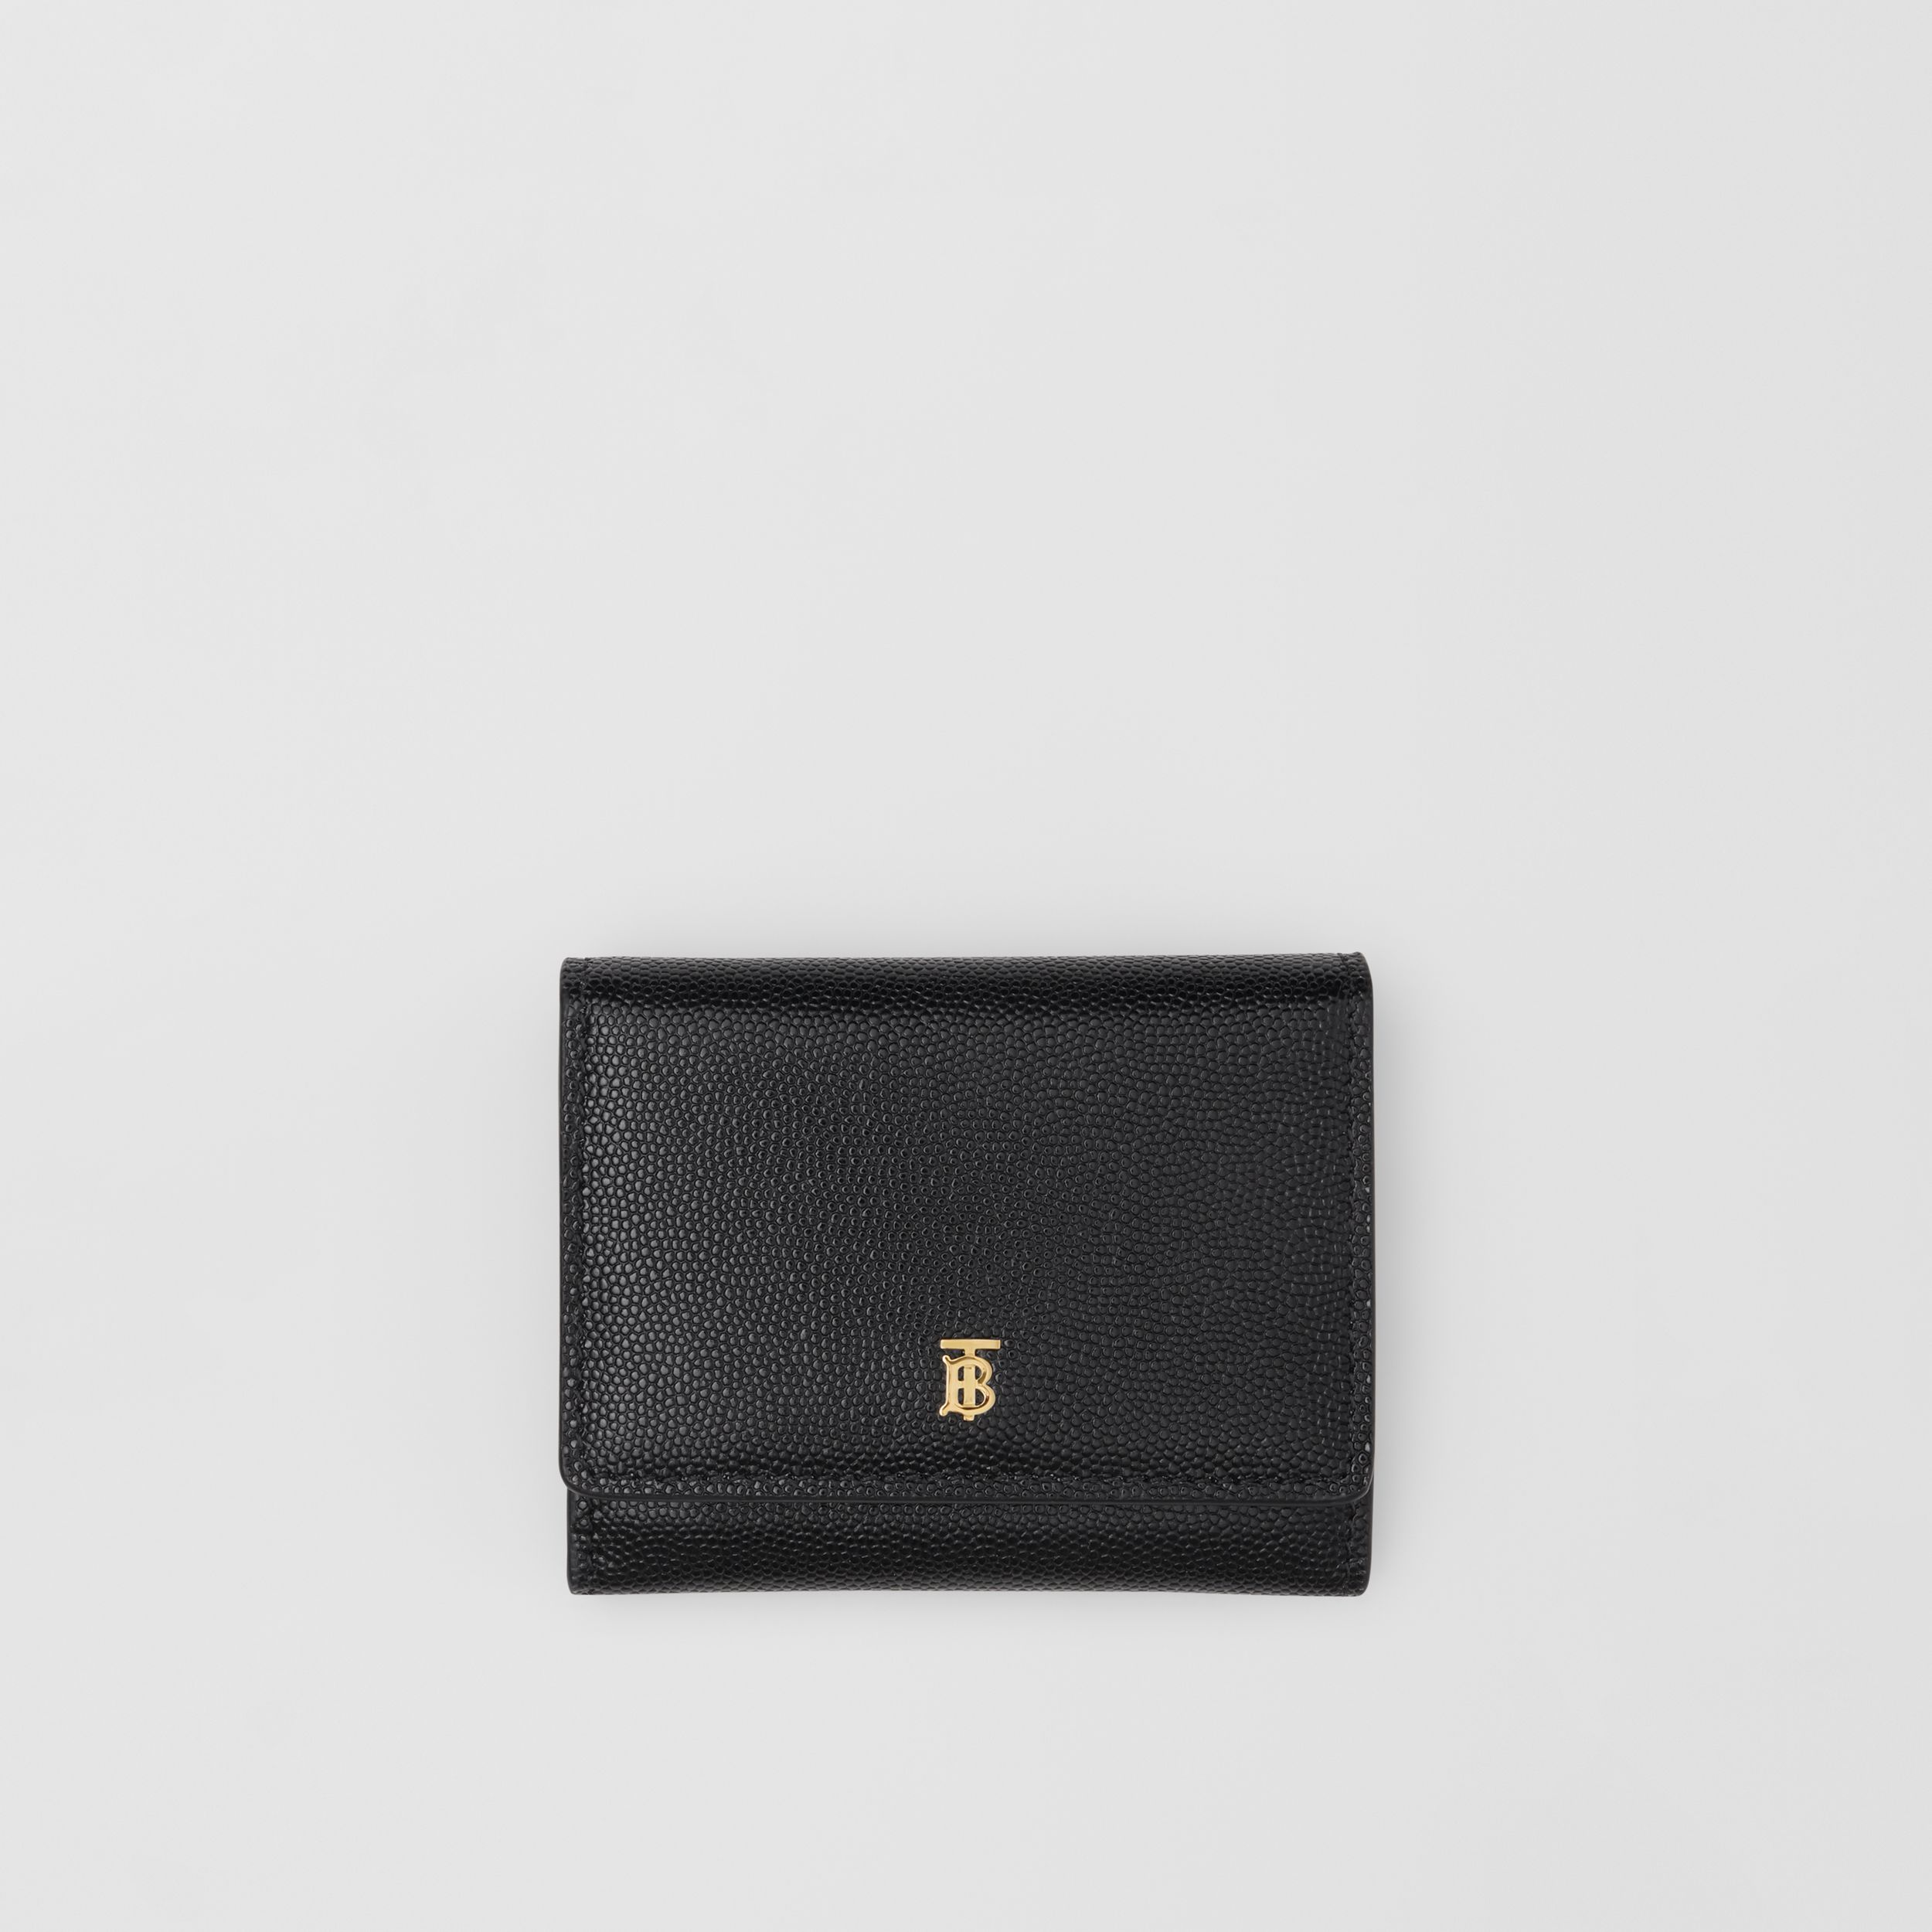 Grainy Leather ID Card Case in Black - Women | Burberry - 1